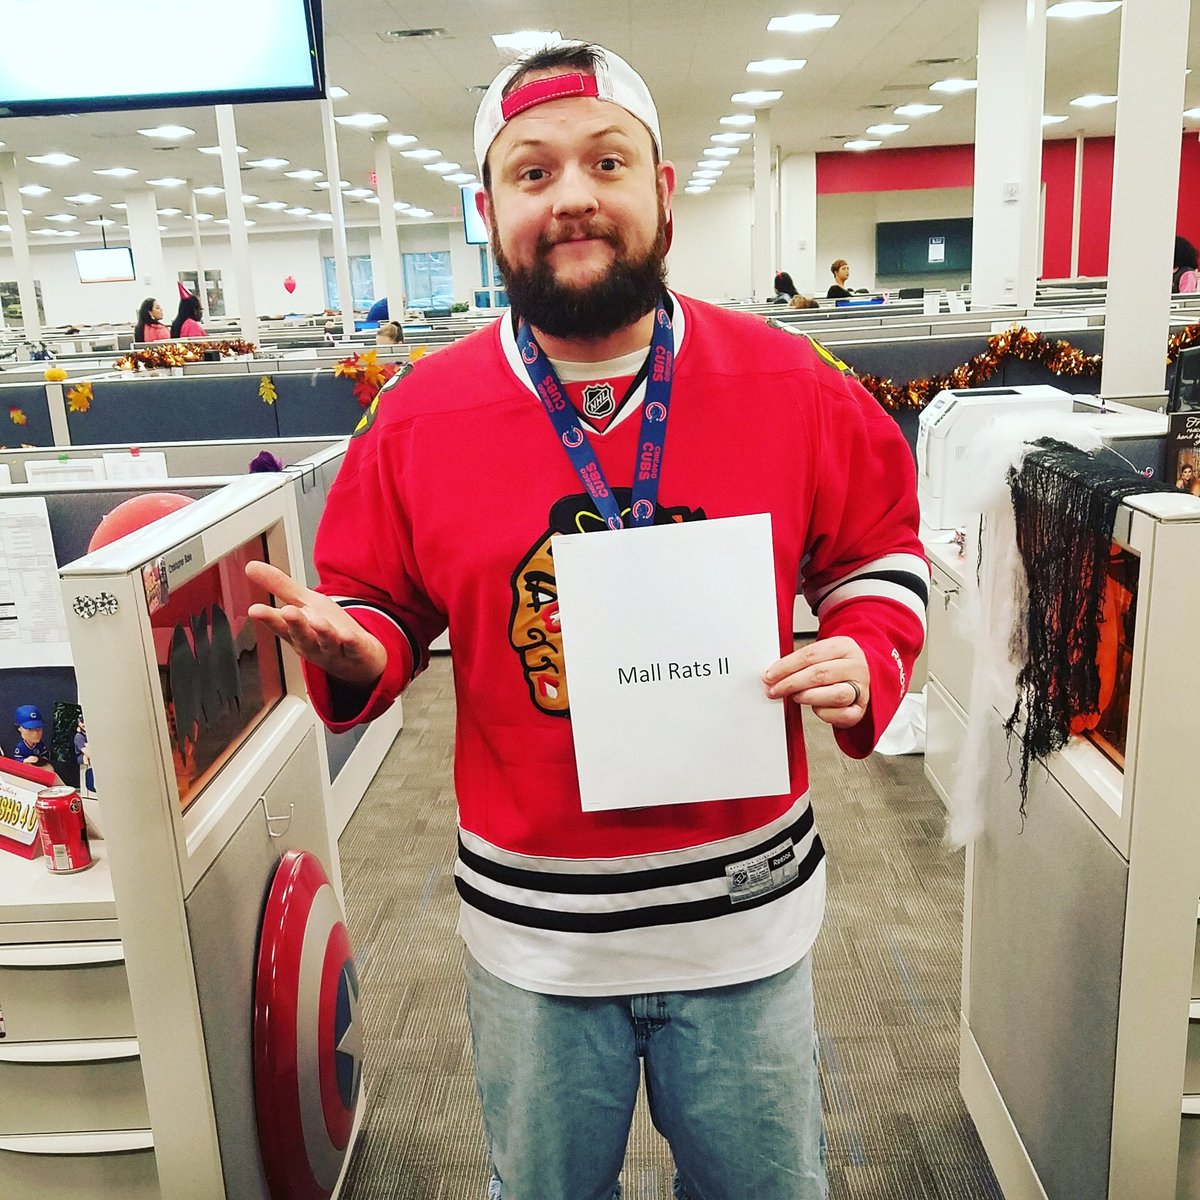 RT @Wolverine0246: For Halloween, none other that the great and powerful @ThatKevinSmith https://t.co/ao2uaVY0VL